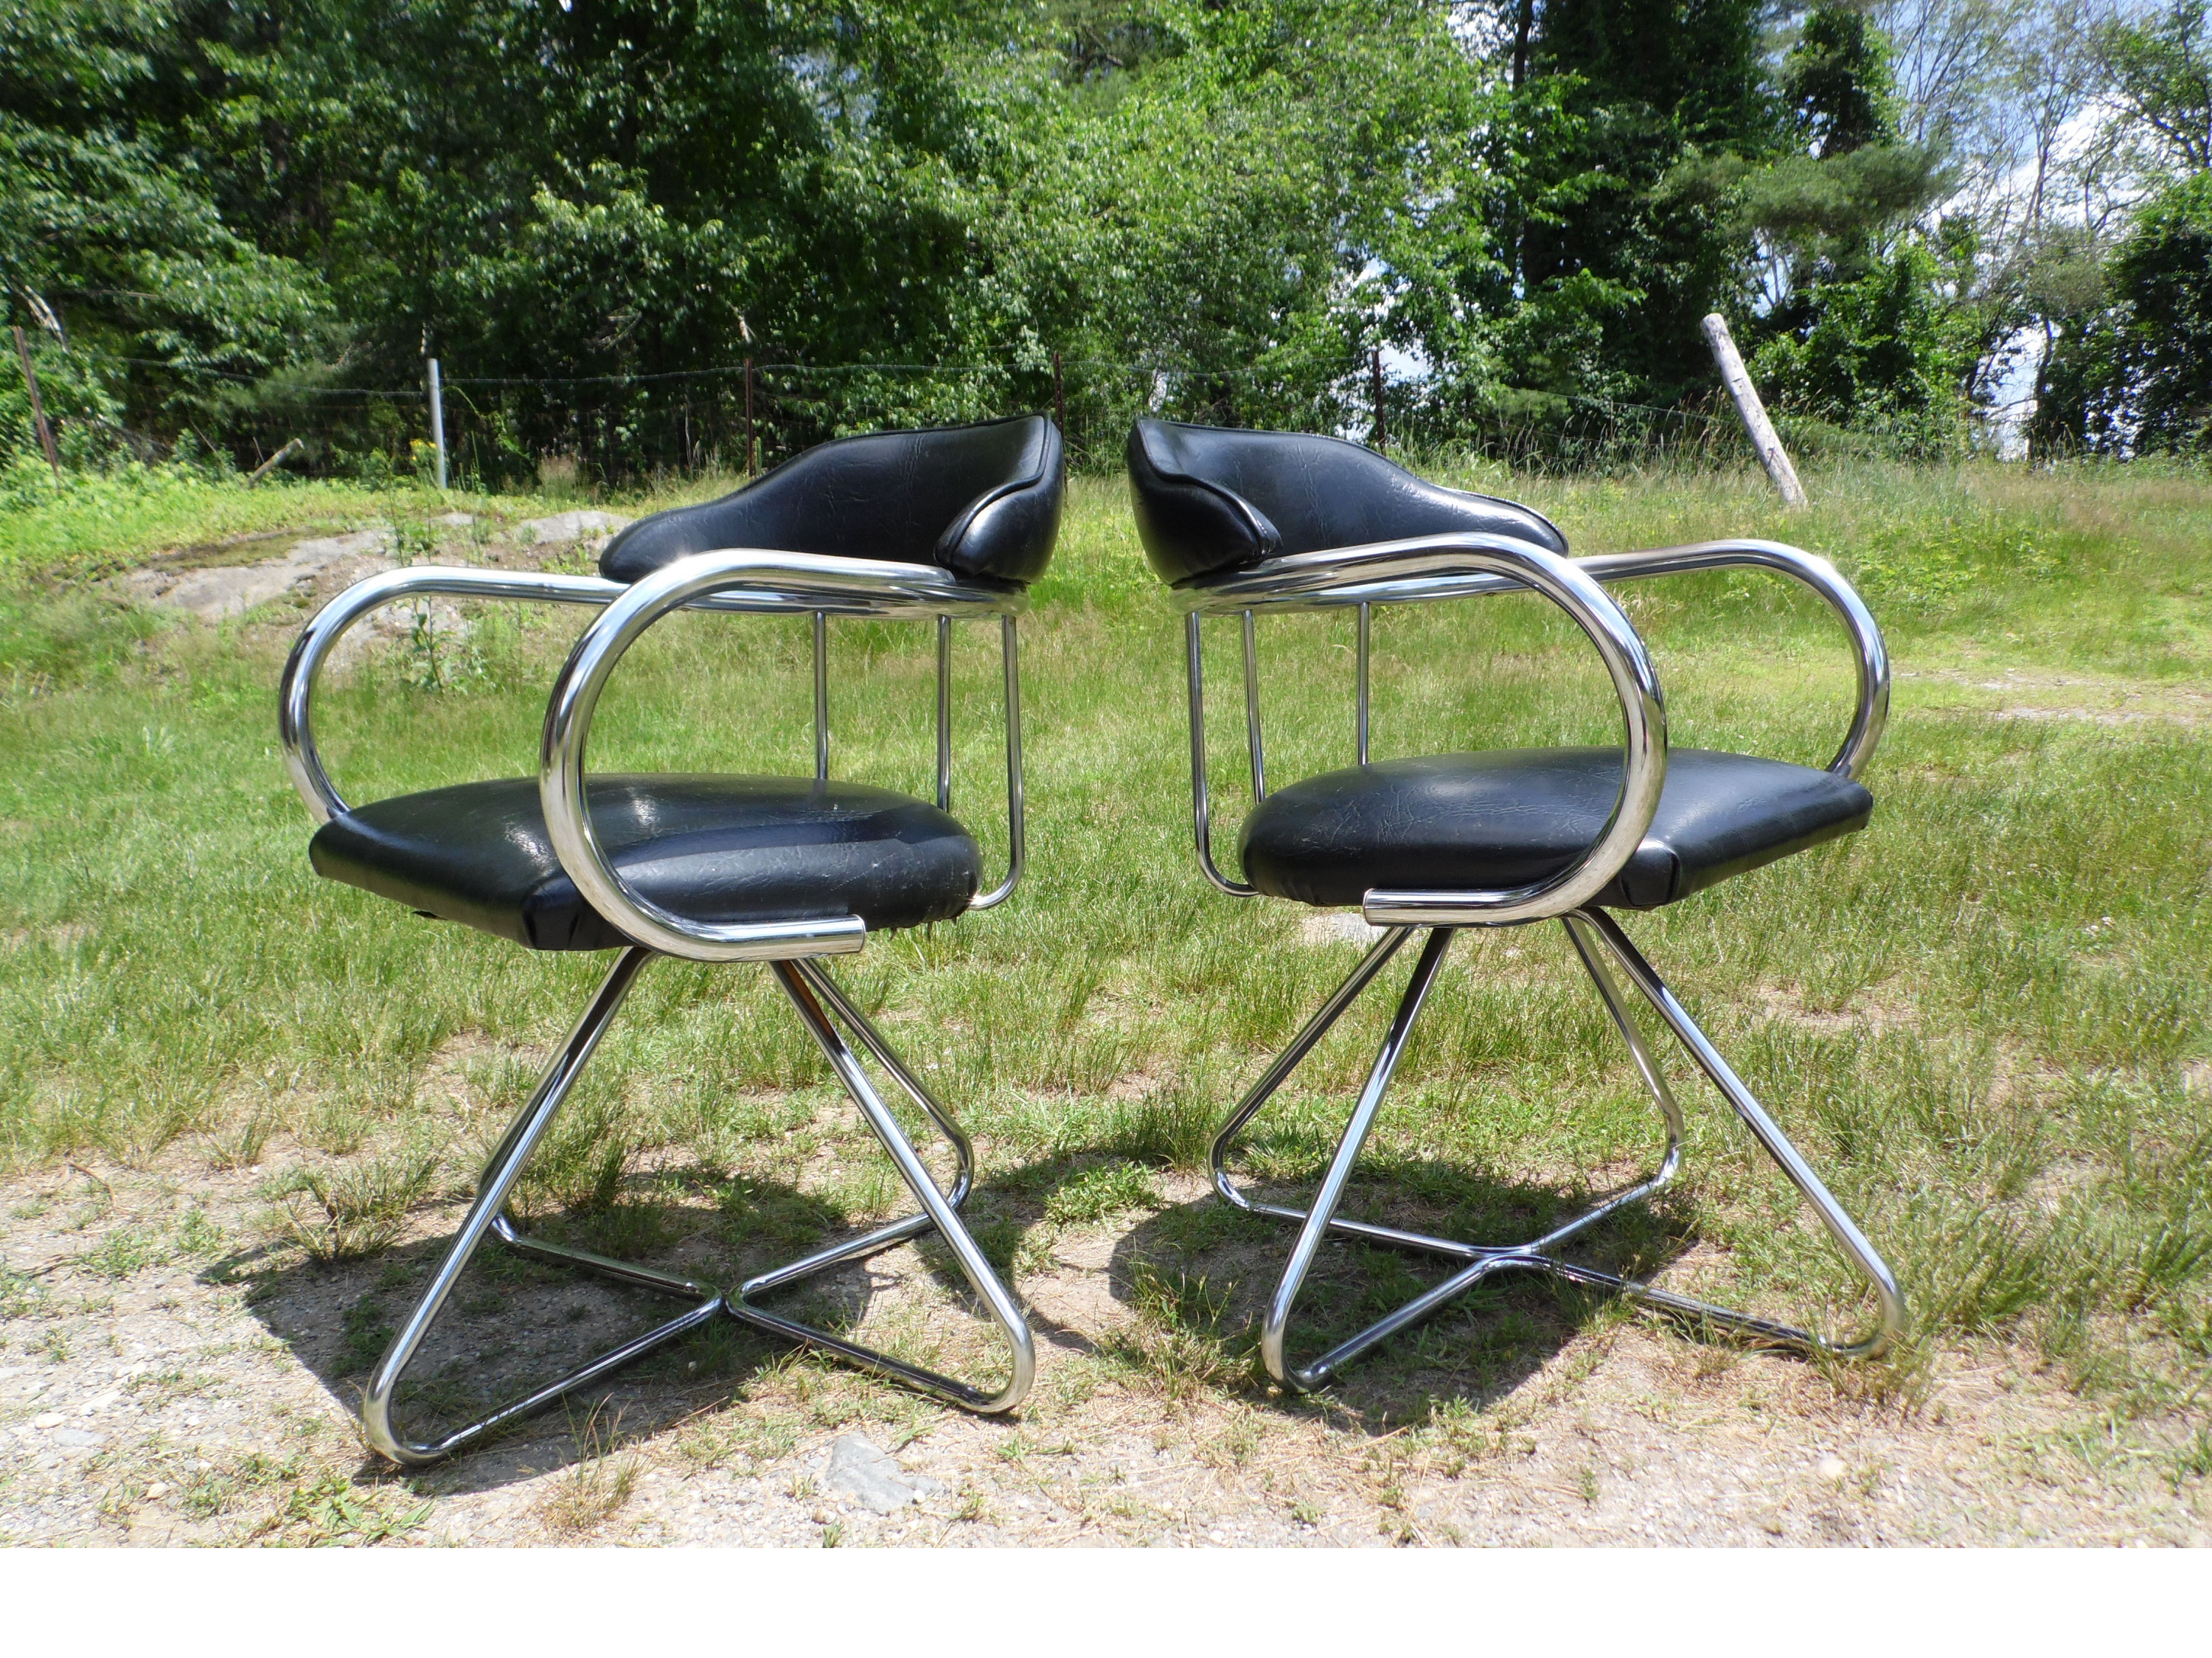 Vintage Pair Mid Century Modern Tubular Chrome Swivel Arm Chairs & Vintage Pair Mid Century Modern Tubular Chrome Swivel Arm Chairs ...